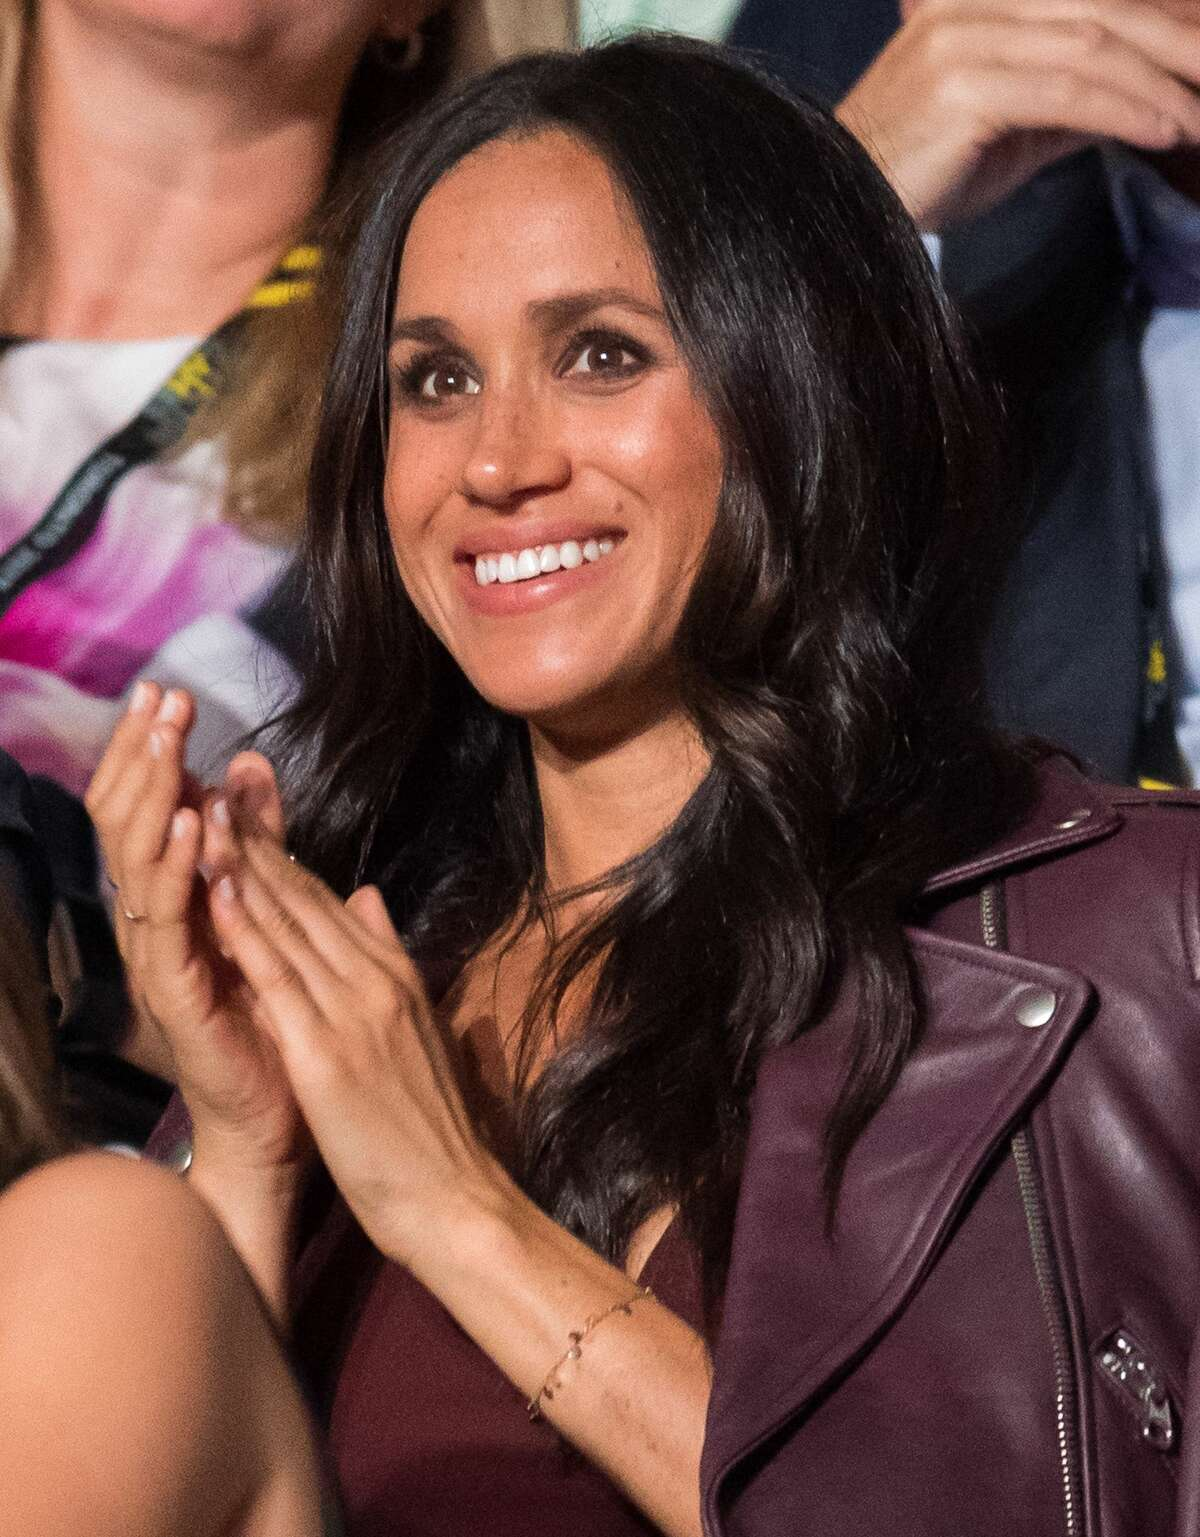 Meghan Markle attends the opening ceremony on day 1 of the Invictus Games Toronto 2017 on September 23, 2017 in Toronto.